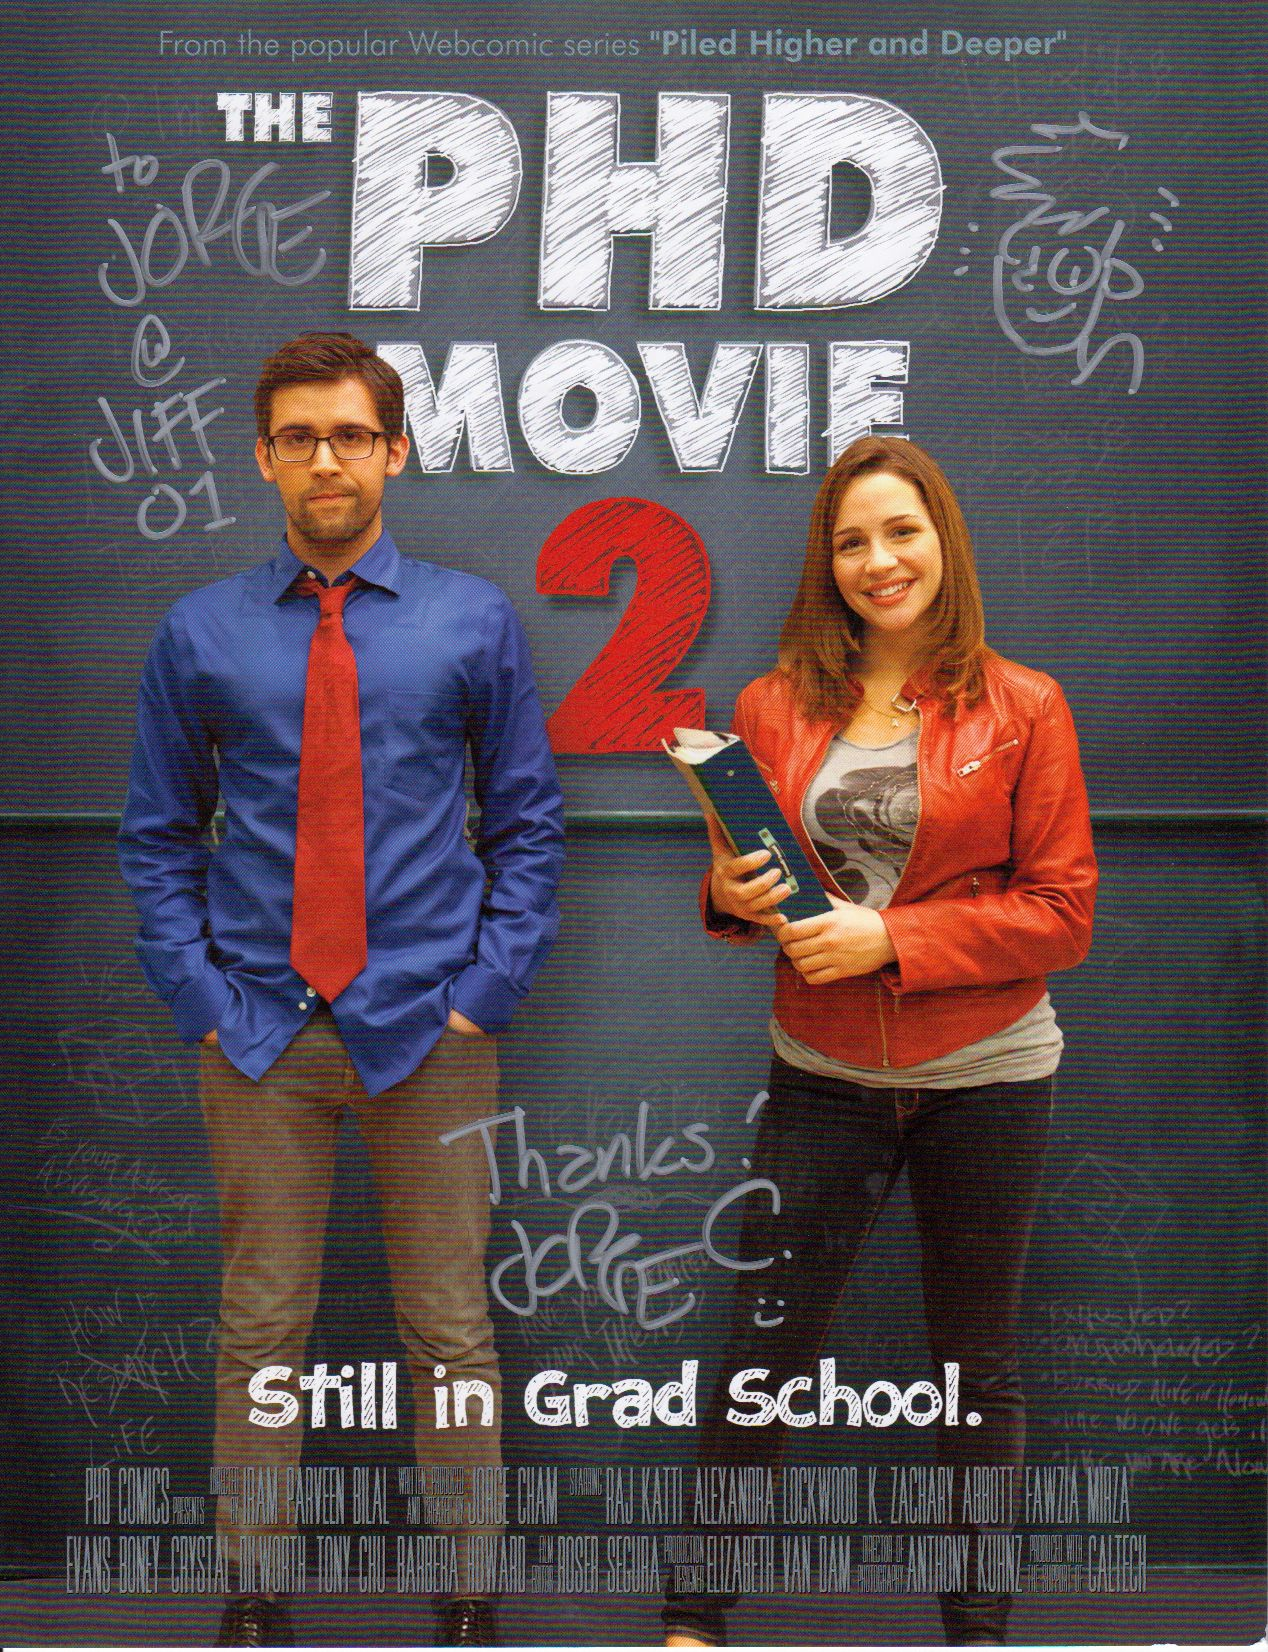 The PHD Movie 2: Still in Grad School